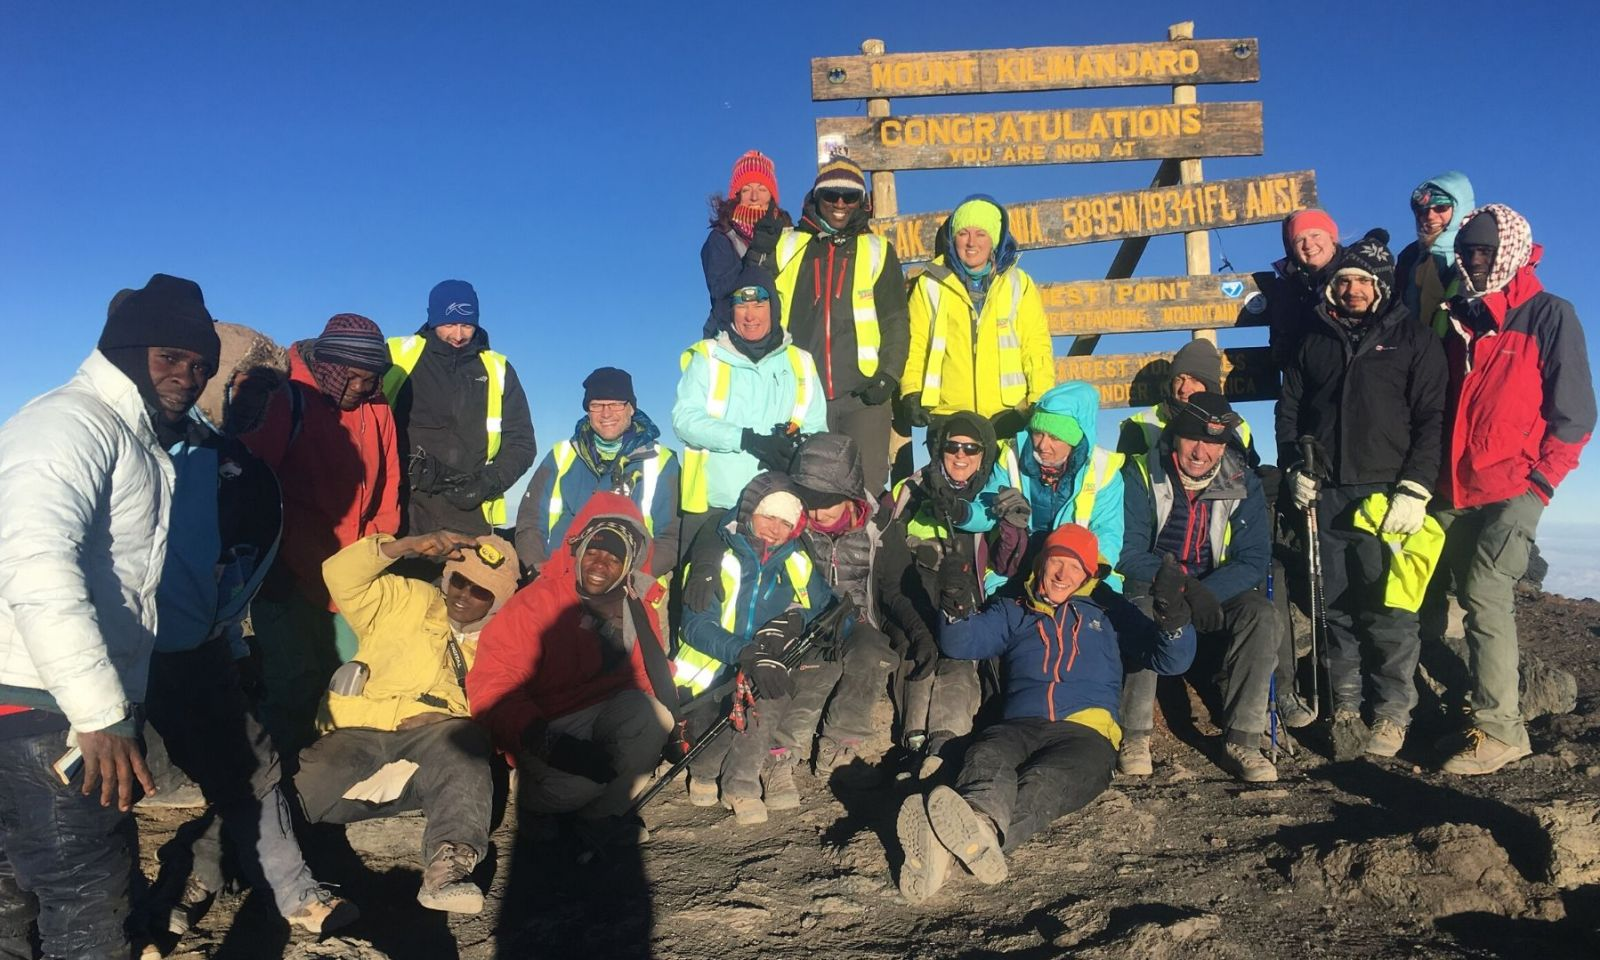 Group of trekkers standing on the summit of Kilimanjaro.